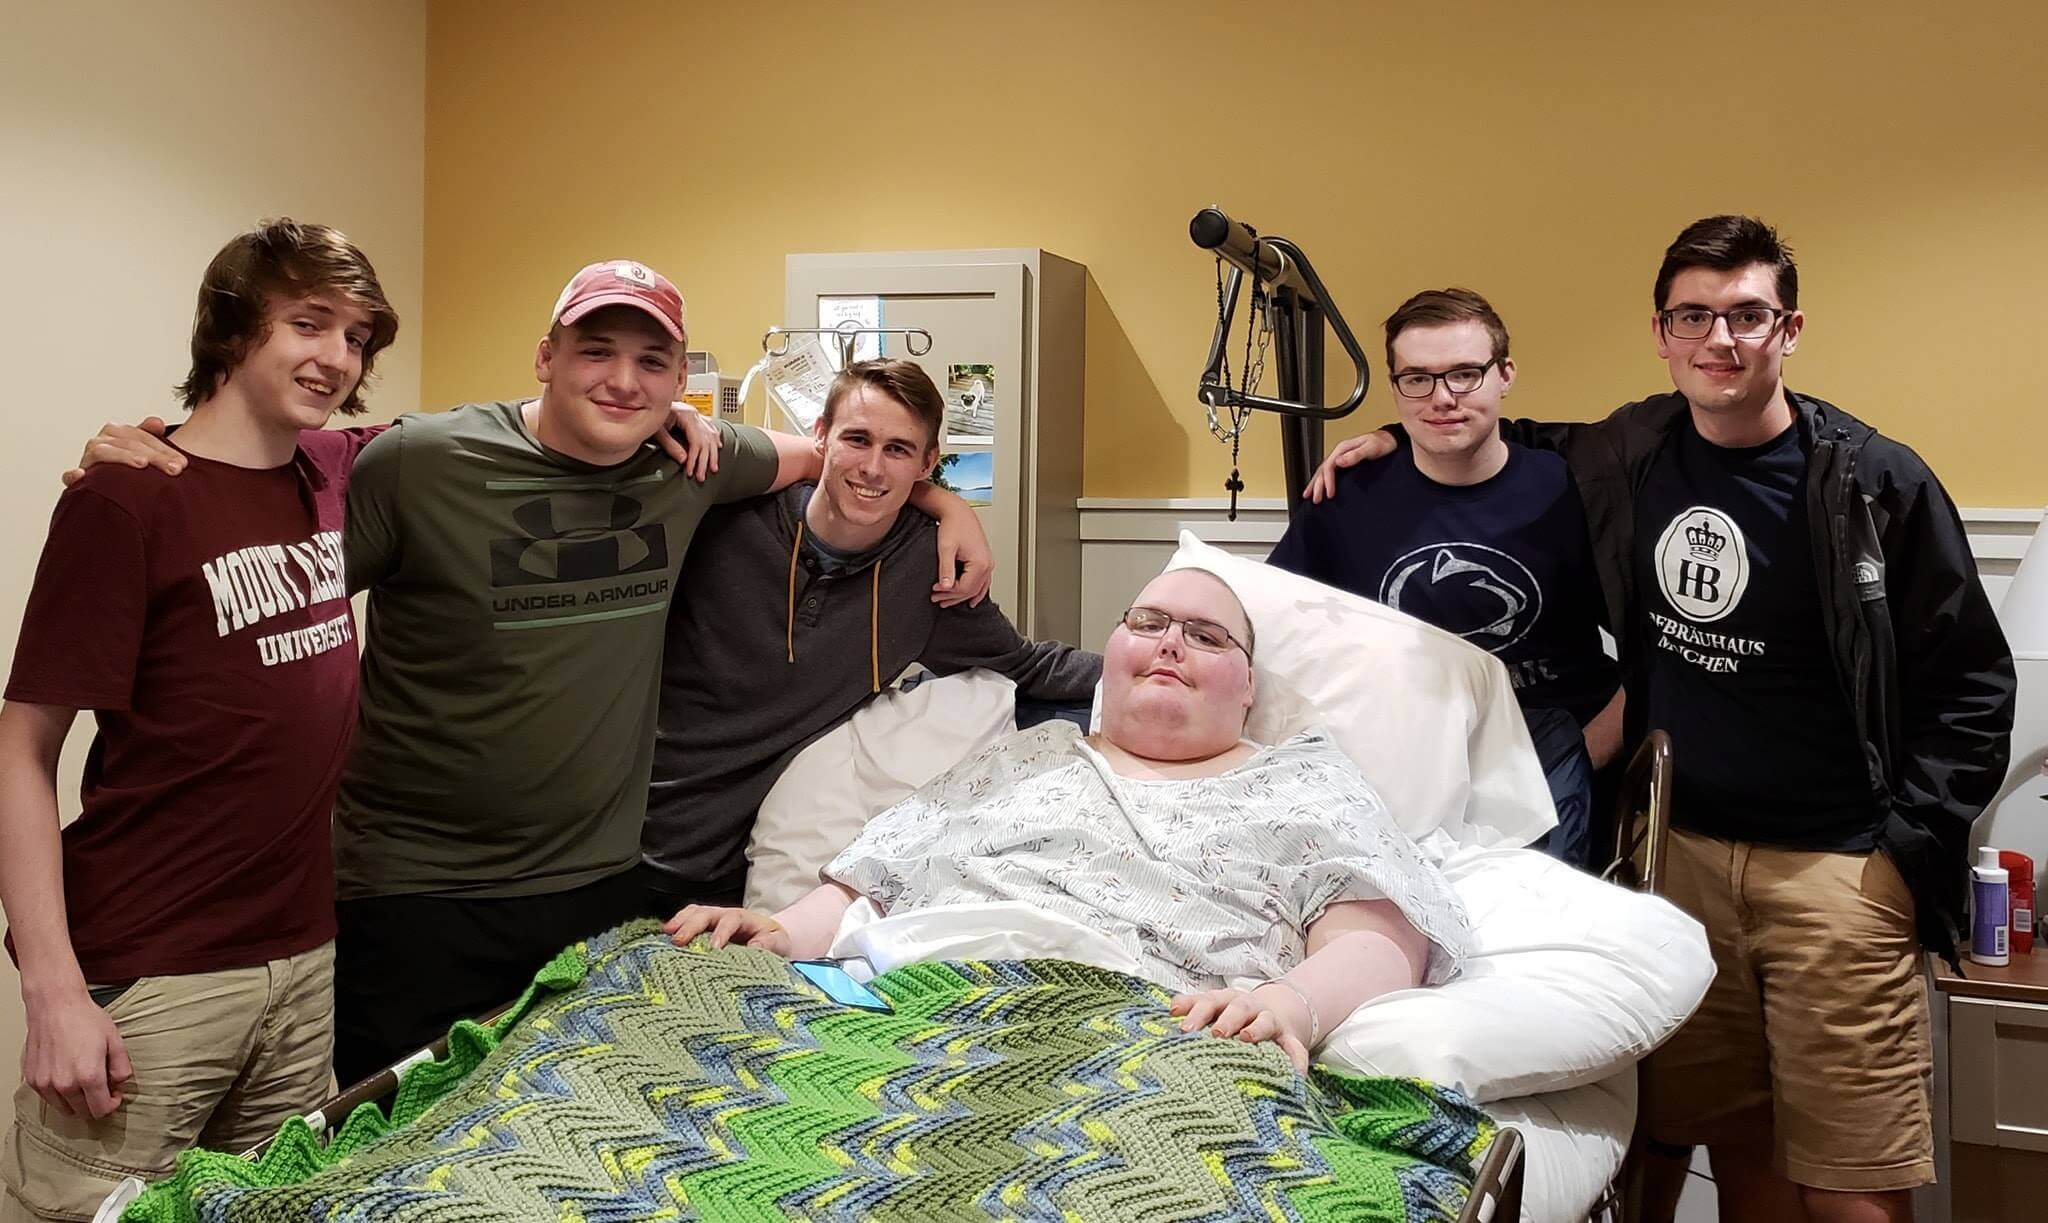 Online gaming friends meet IRL after one receives terminal cancer